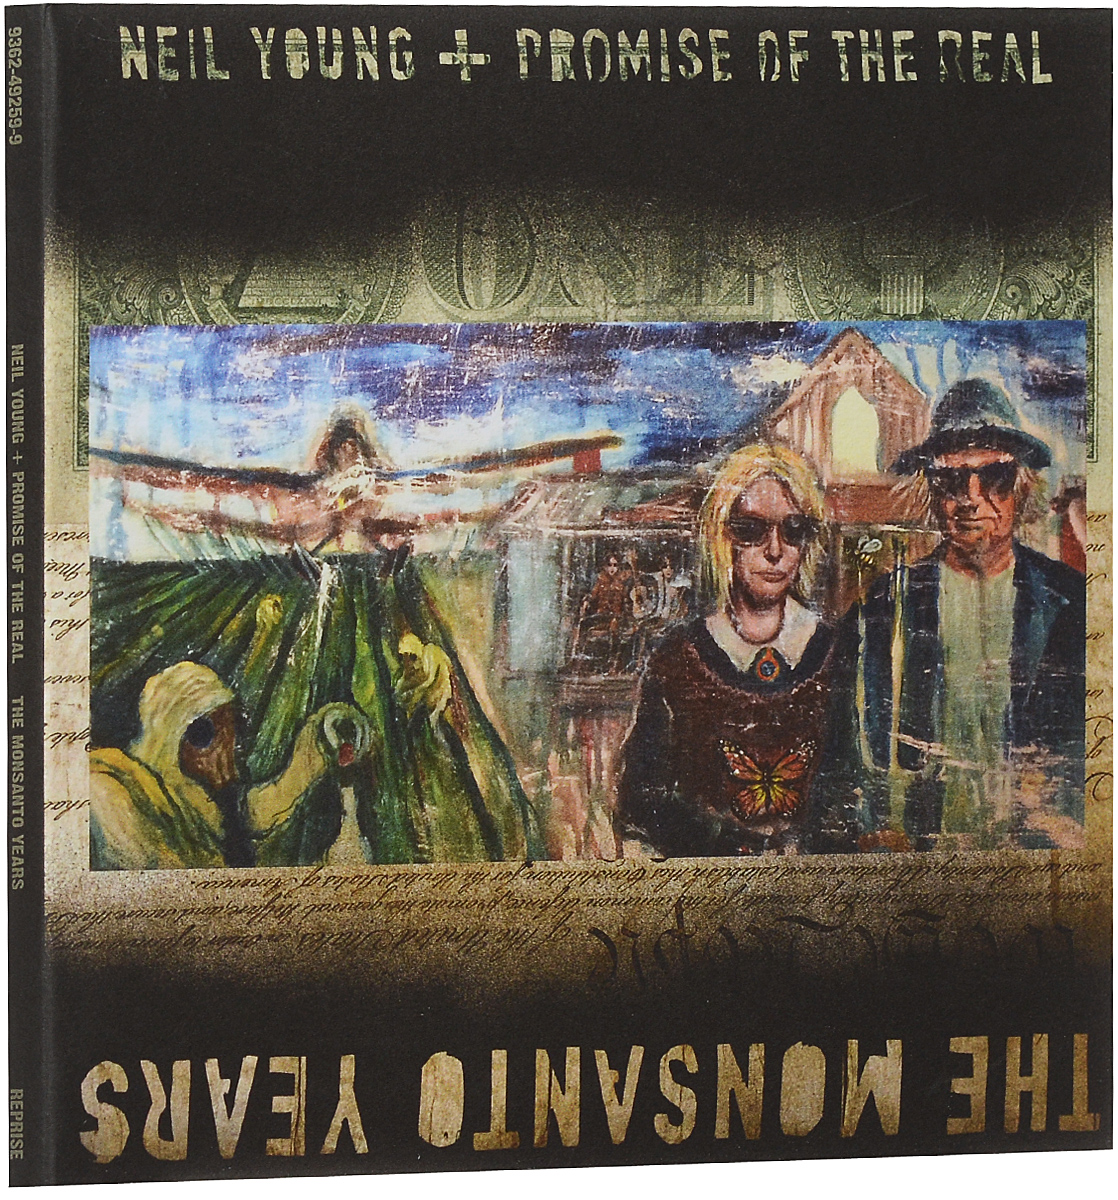 Нил Янг,Promise Of The Real Neil Young + Promise Of The Real. The Monsanto Years (CD + DVD)